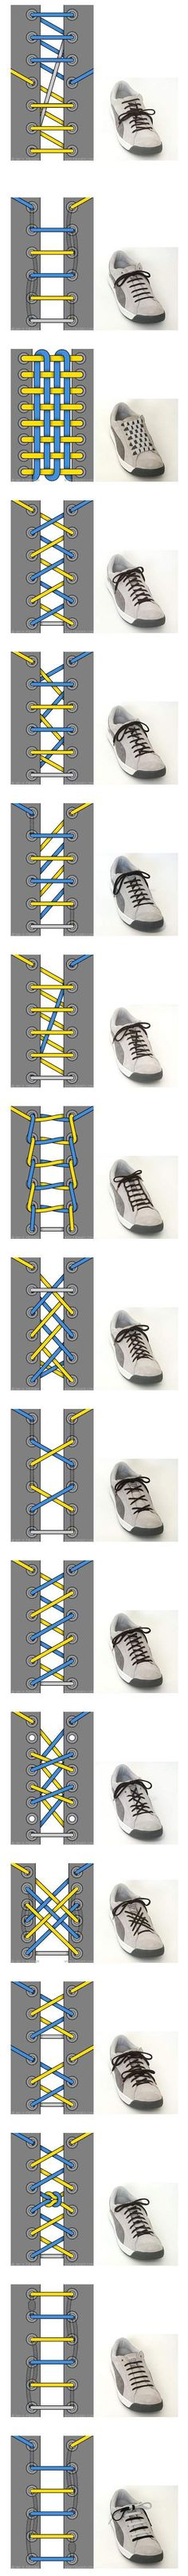 Different ways of tying your shoes! Awesome!